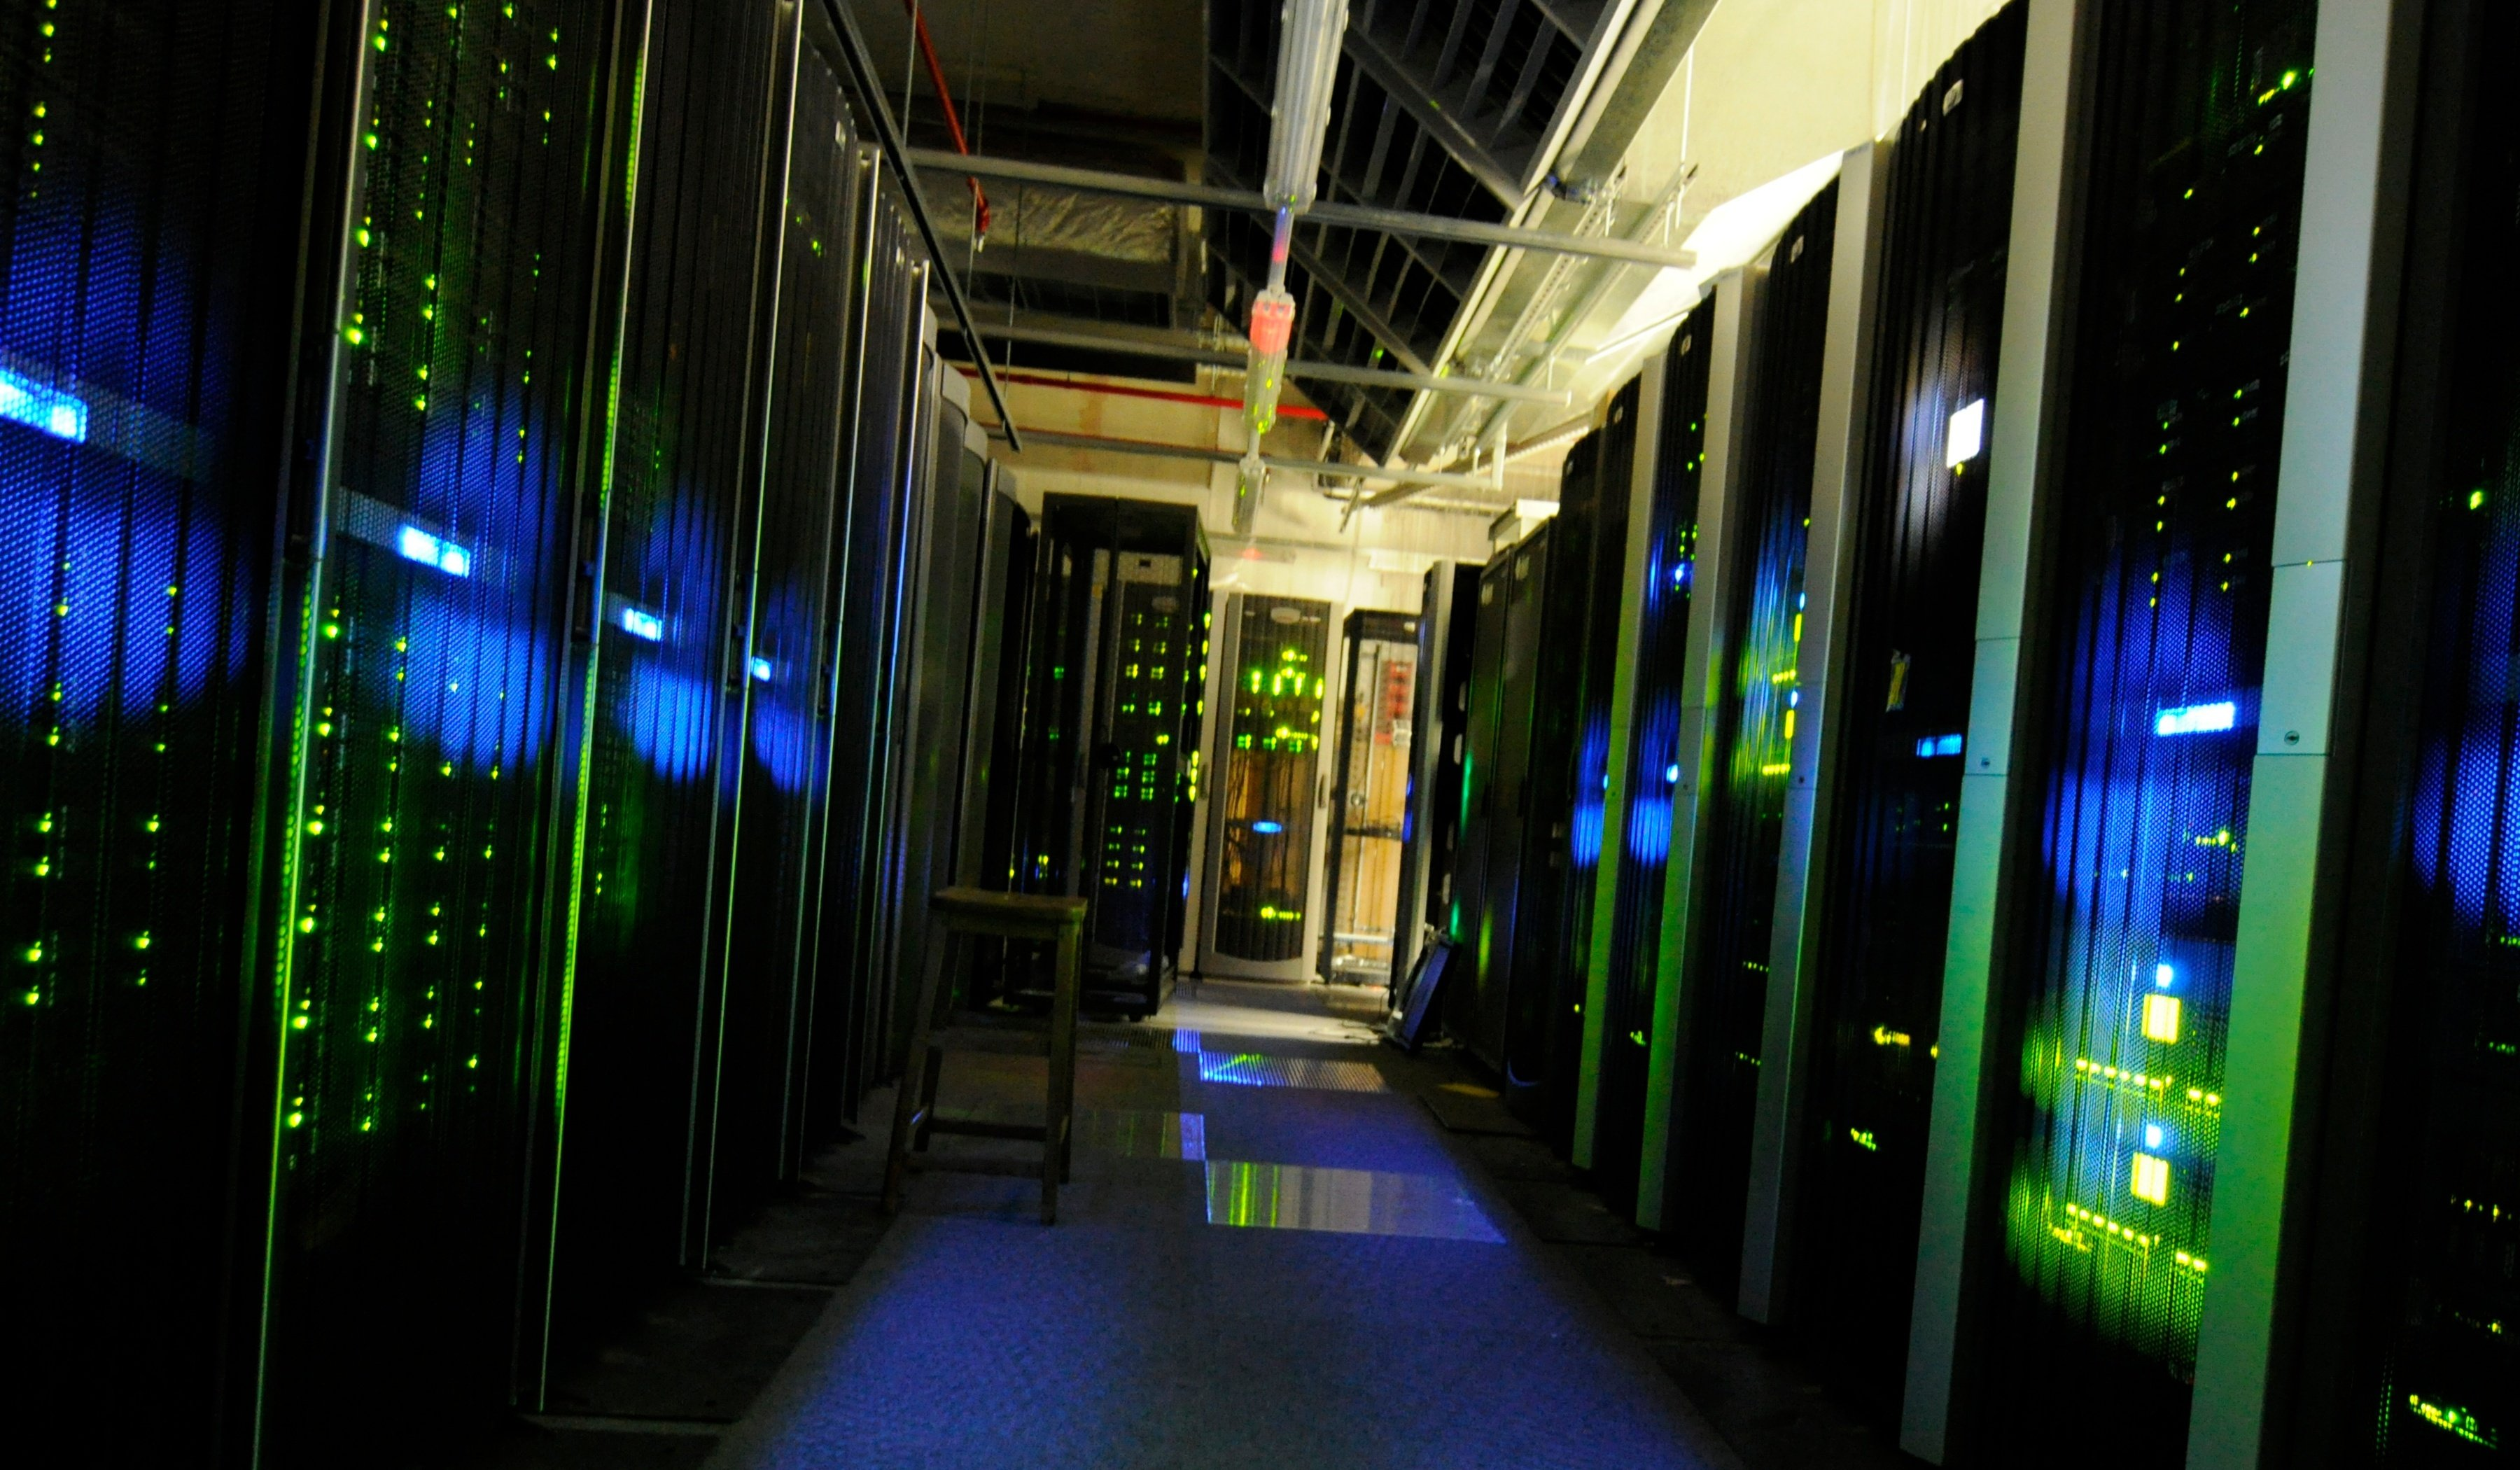 Security and performance required to support data center transformation, survey shows